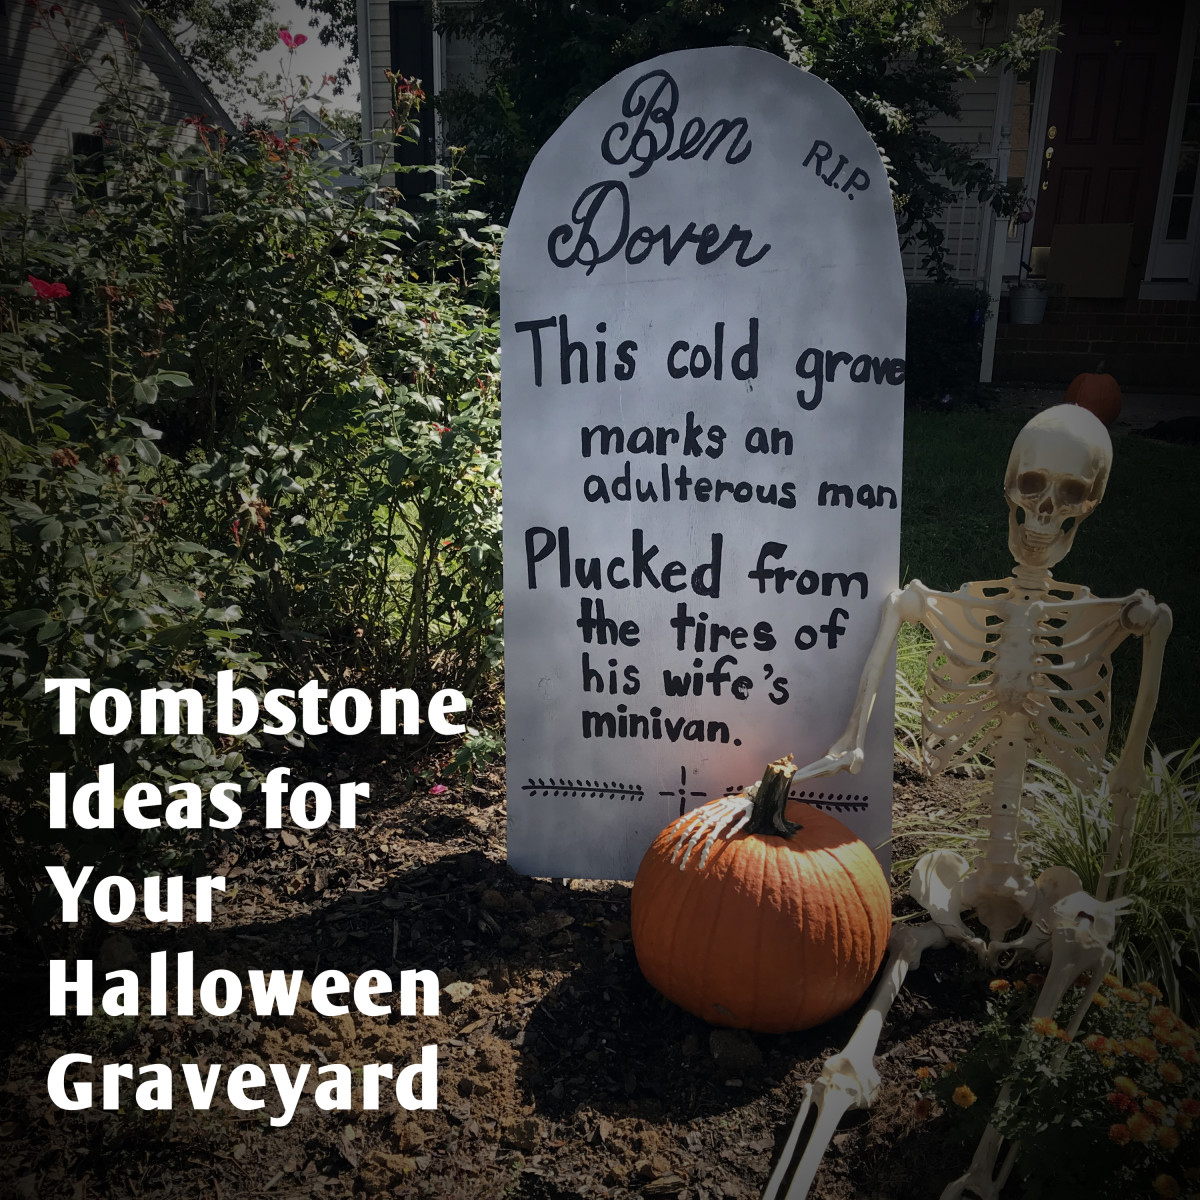 Transform your yard into a creepy Halloween graveyard with fake tombstones and clever epitaphs. Here are ideas for funny R.I.P. names and spooky tombstone sayings, plus easy instructions for making your own headstones.